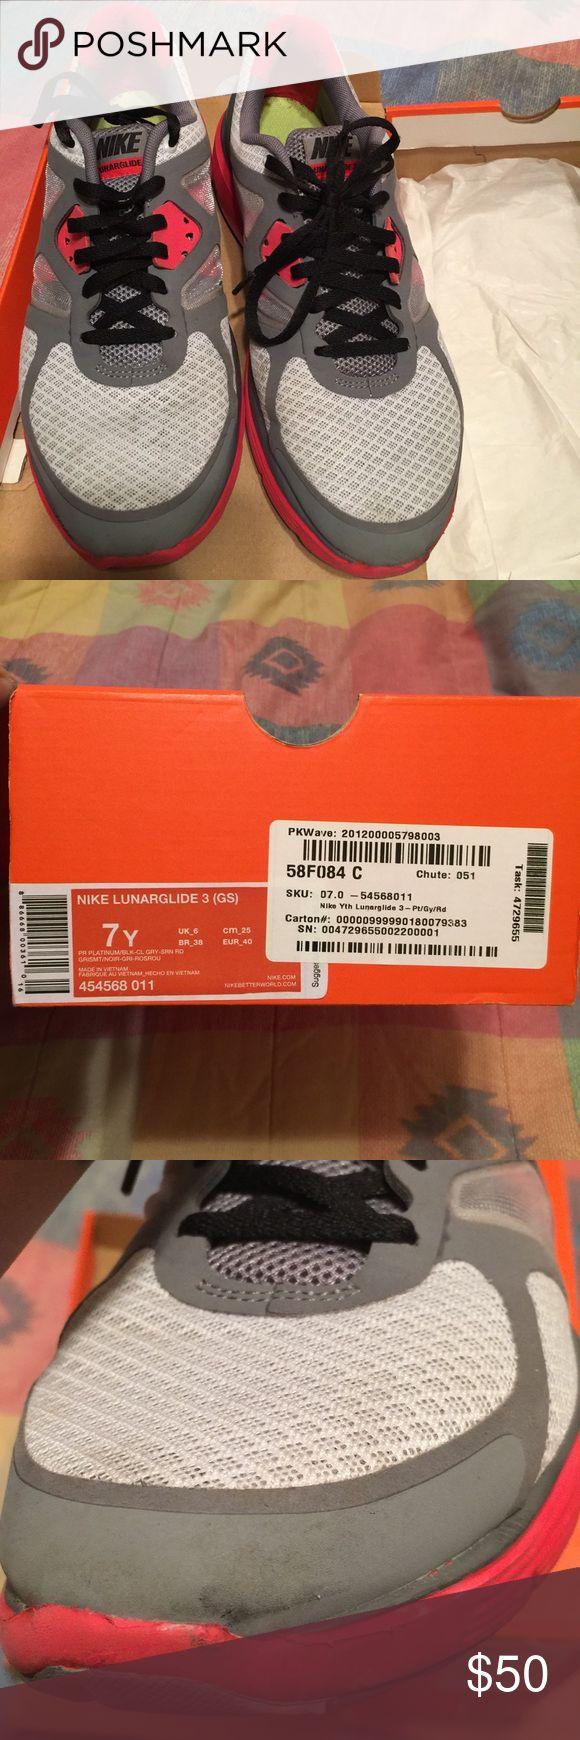 Big kids size 7/ women's size 9 Running Nikes Original Lunarglide box, gently worn. Scuff on front shown in the picture. Gray and infrared. Nike Other